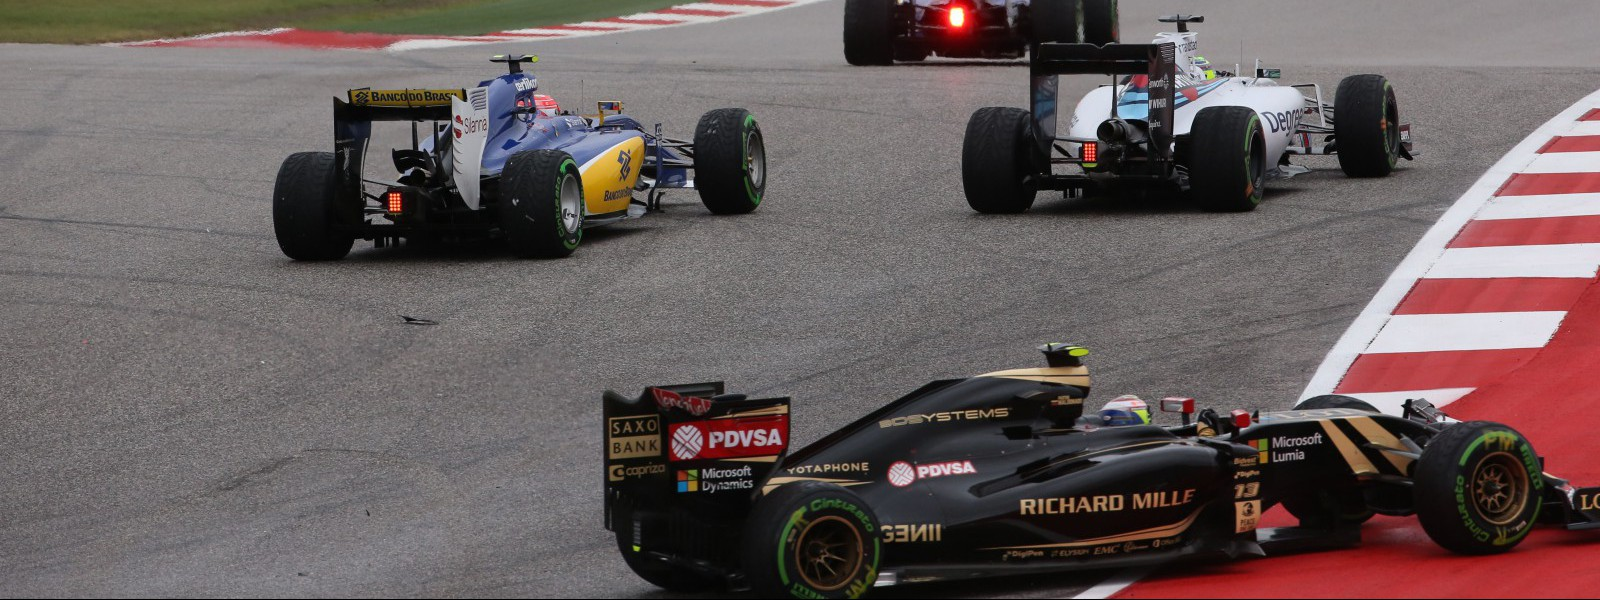 Motorsports: FIA Formula One World Championship 2015, Grand Prix of United States,  #12 Felipe Nasr (BRA, Sauber F1 Team), #19 Felipe Massa (BRA, Williams Martini Racing), #13 Pastor Maldonado (VEN, Lotus F1 Team),  *** Local Caption *** +++ www.hoch-zwei.net +++ copyright: HOCH ZWEI +++